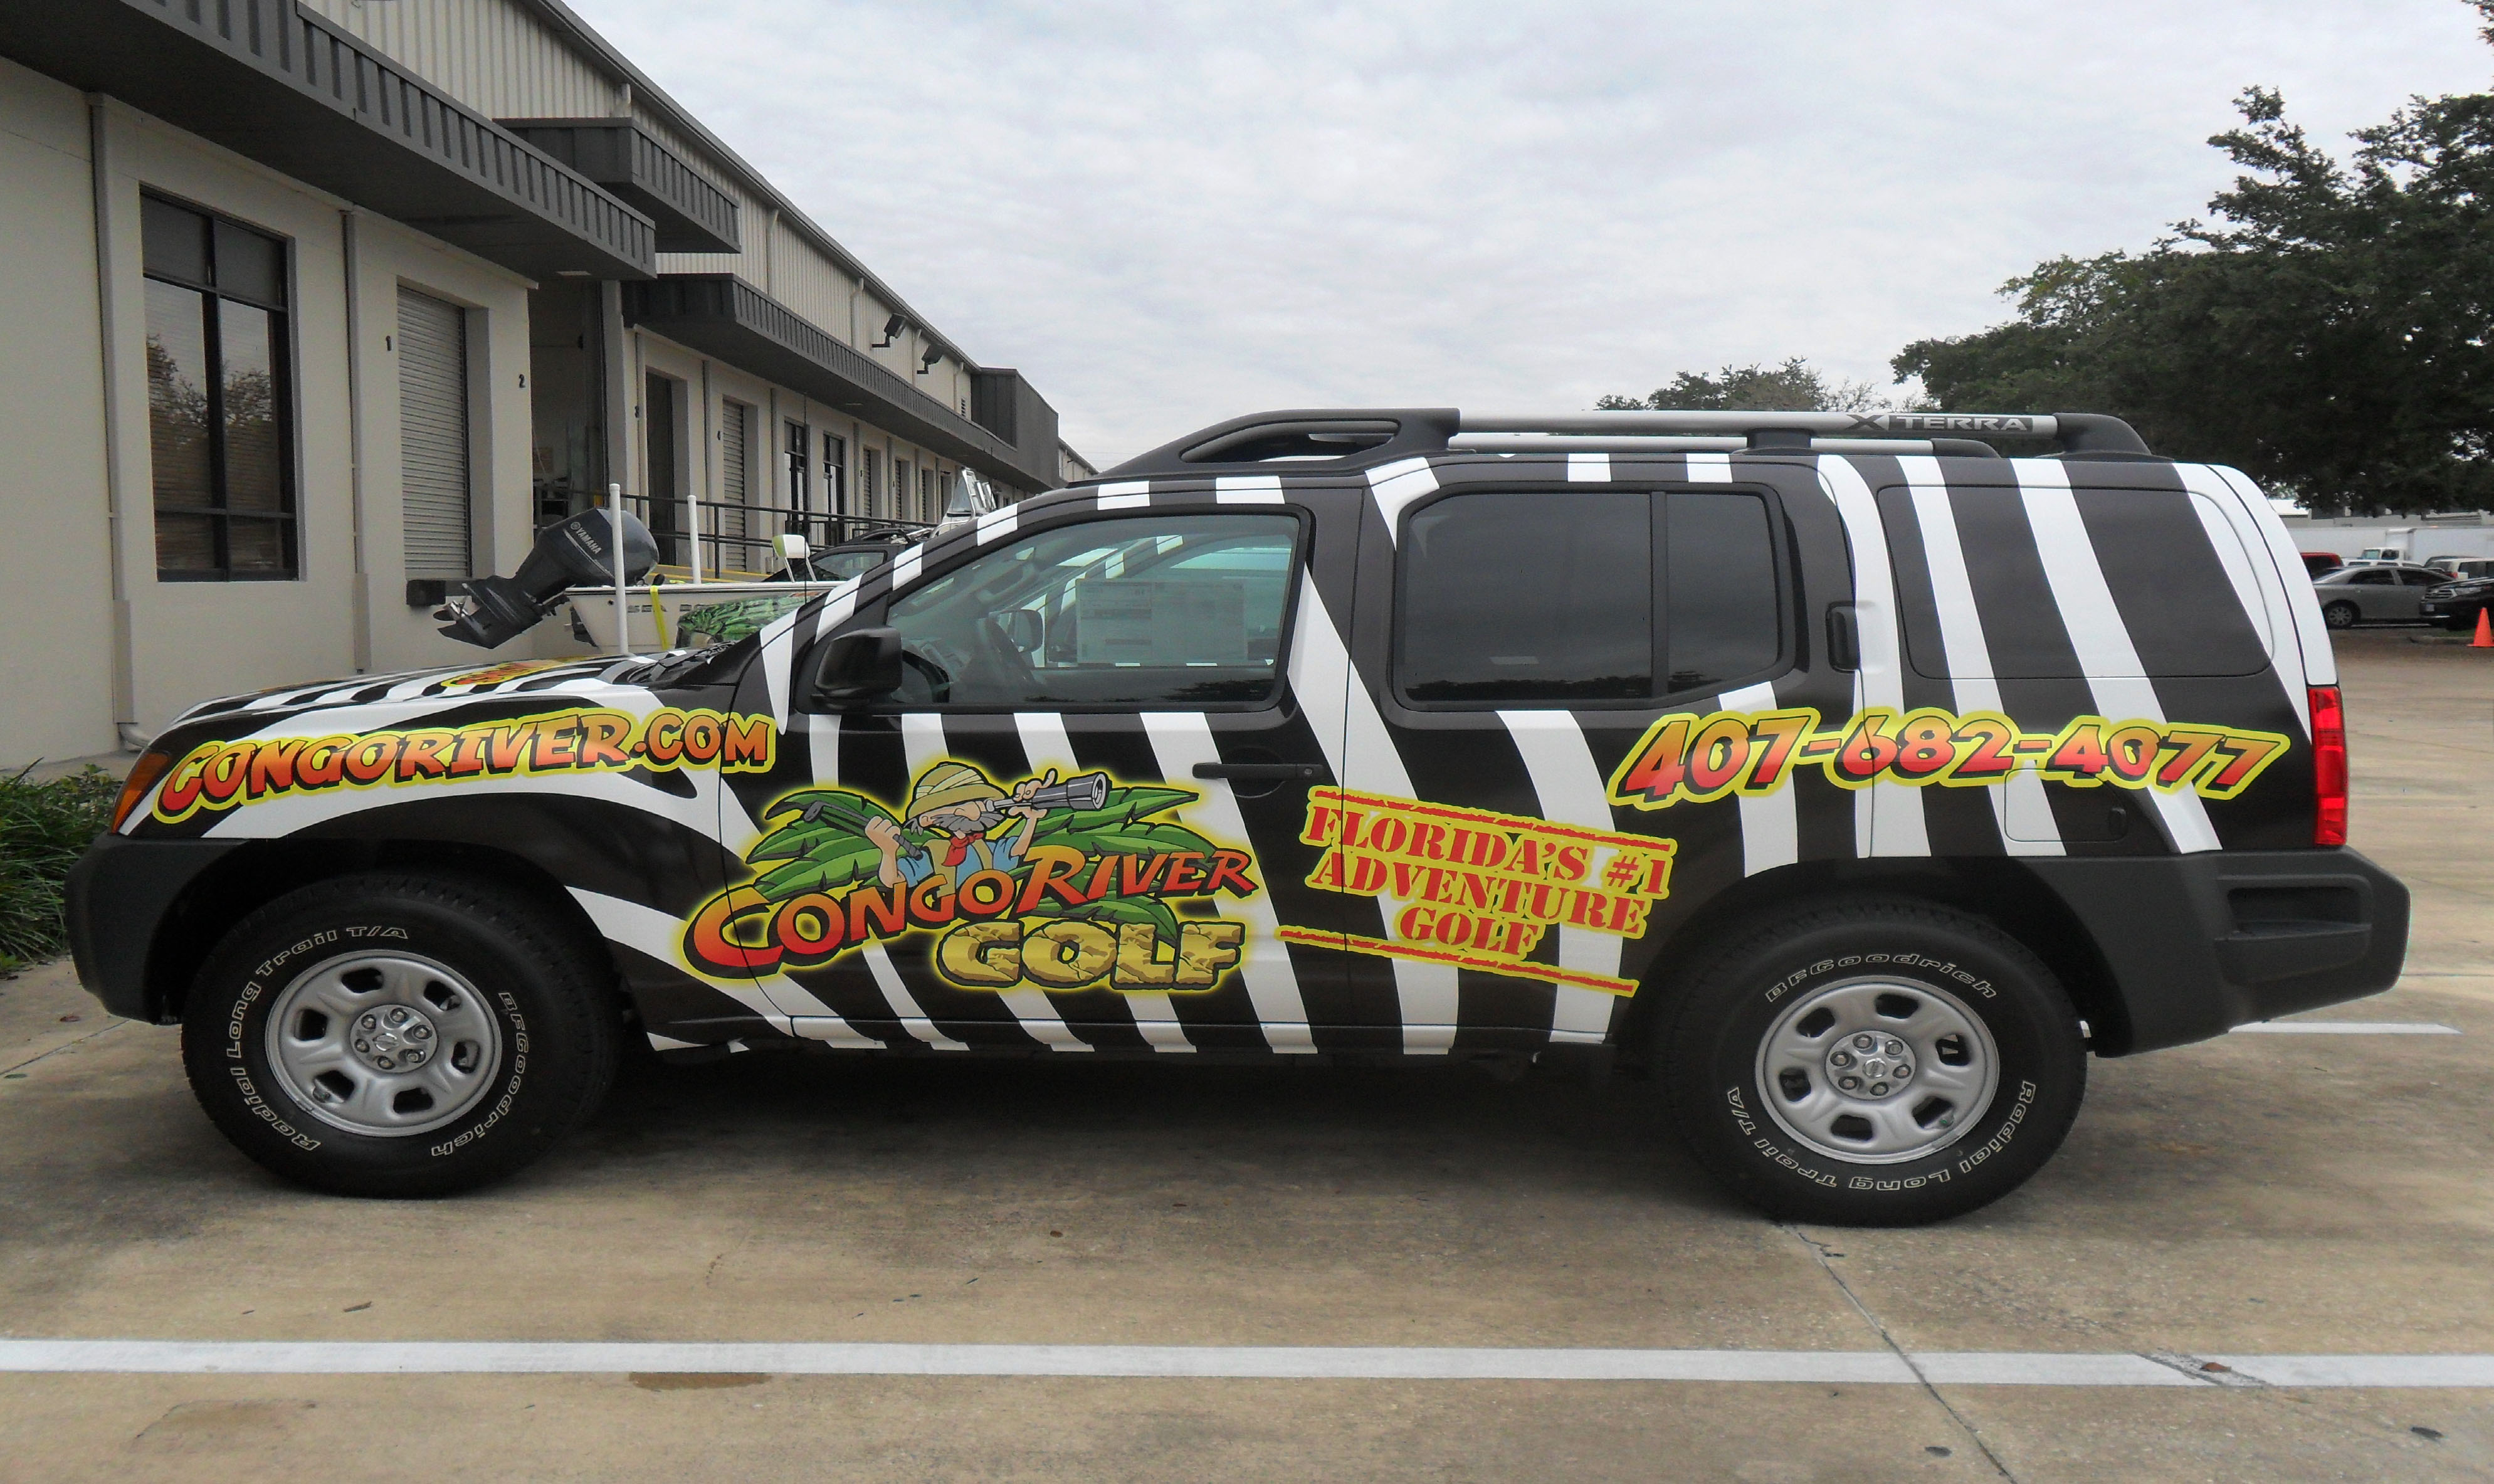 sponsorship marketing used on Xterra for Congo River golf